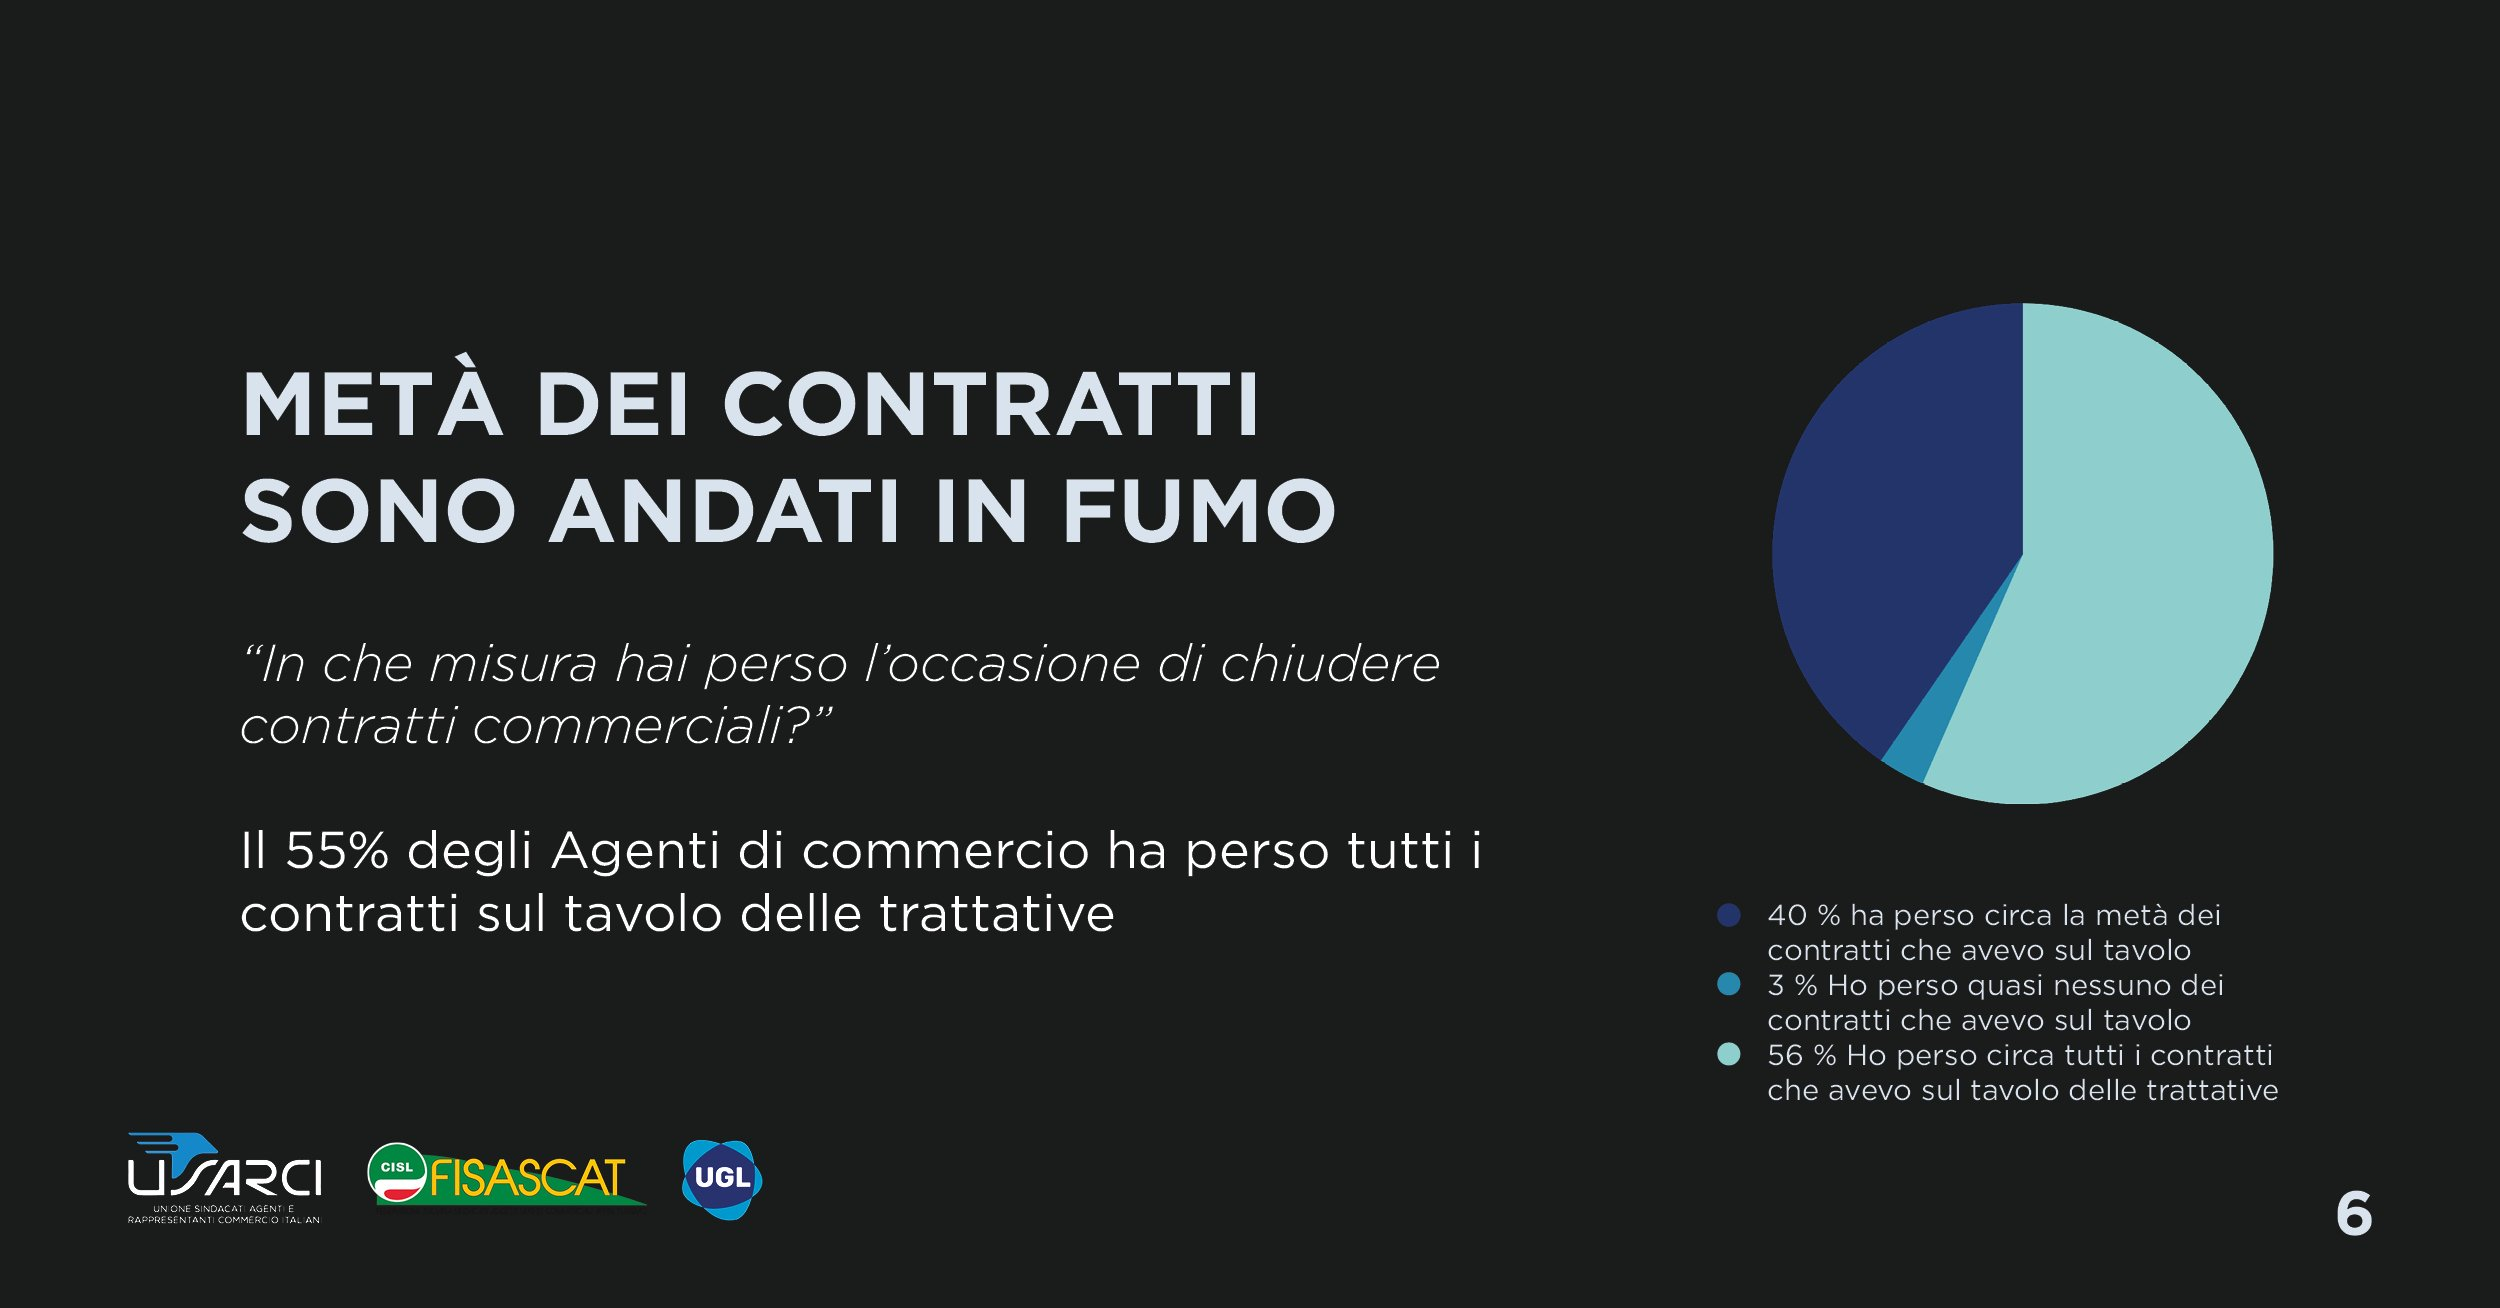 Presentazione questionario_FB Post8